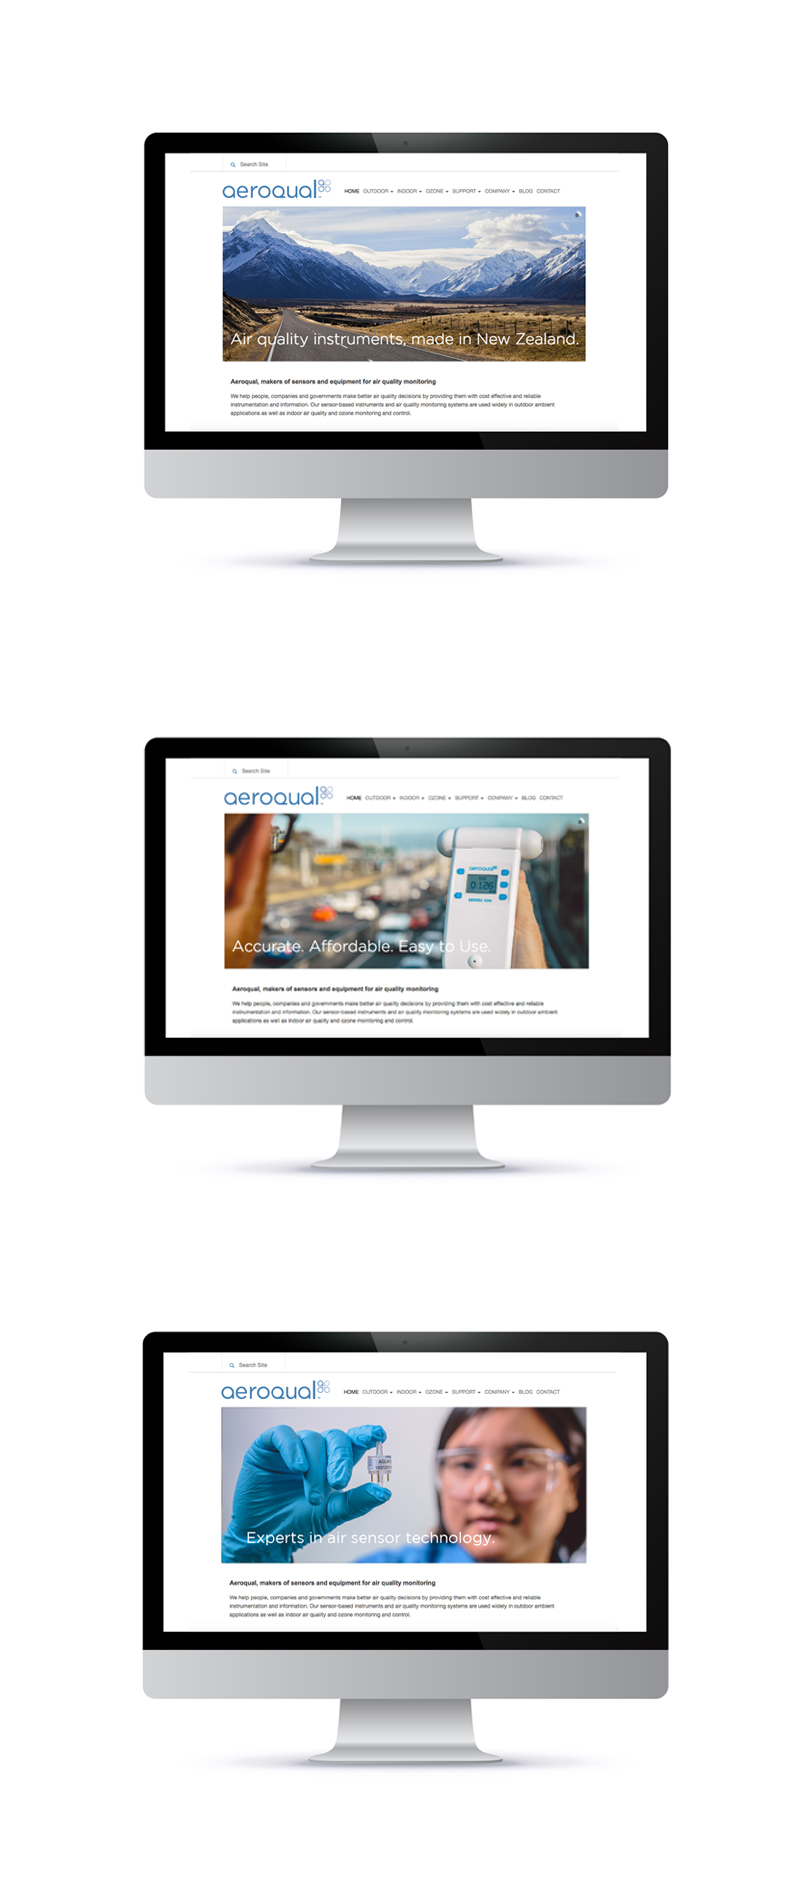 Aeroqual-website-images-mockup-web